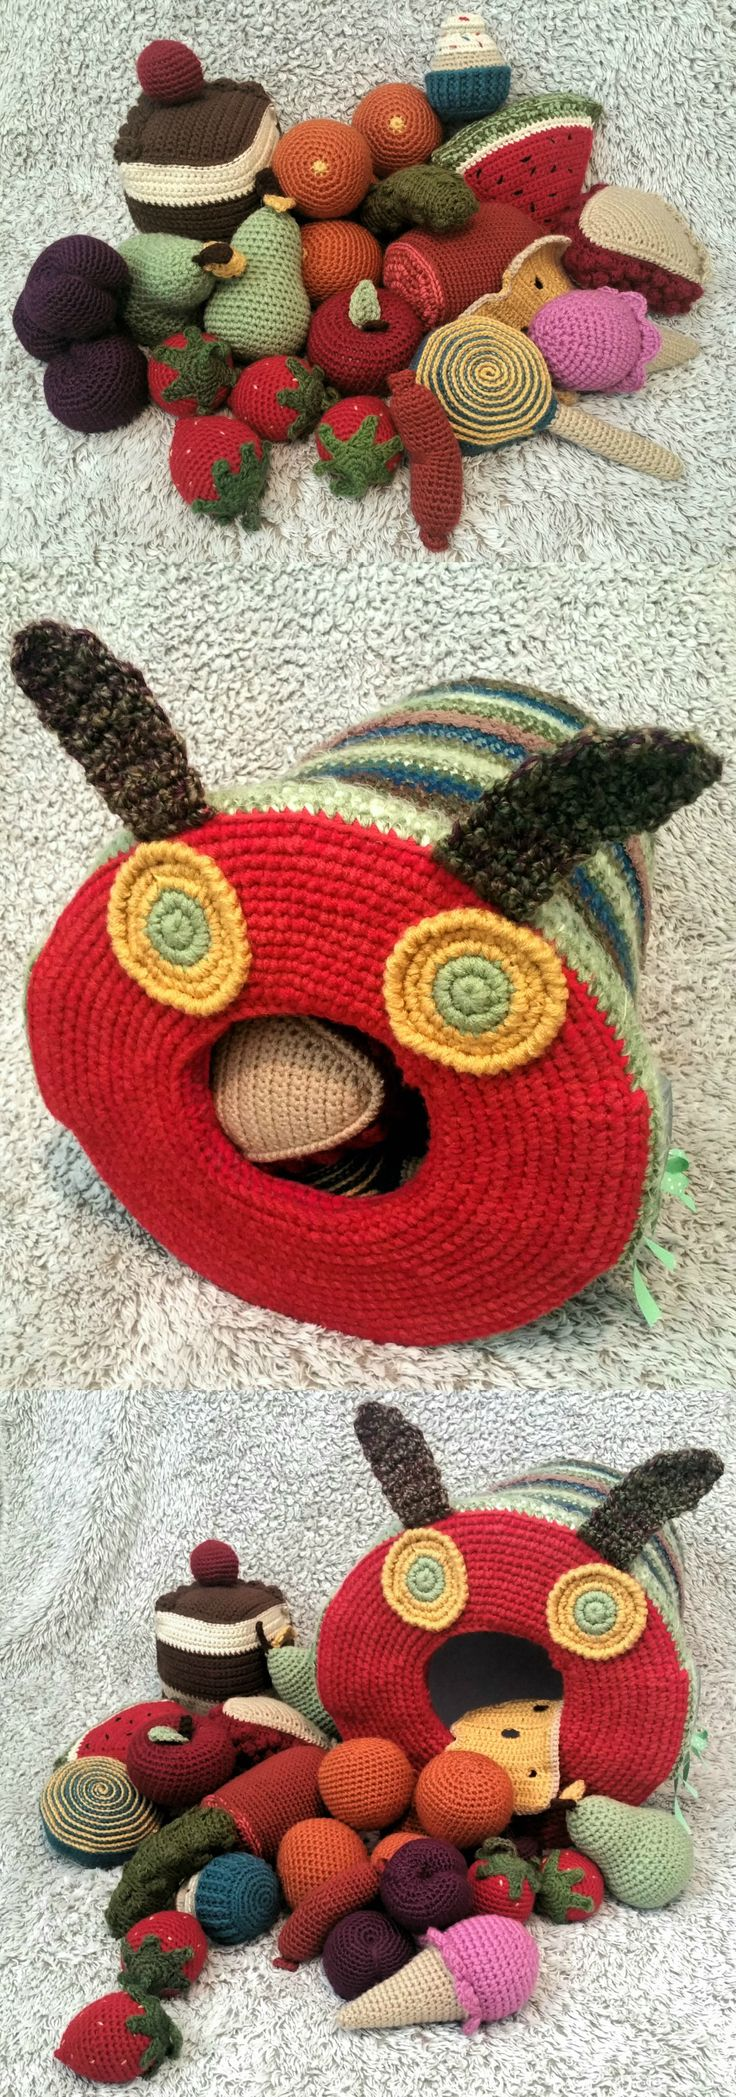 Crochet - Eric Carle's The Very Hungry Caterpillar Read Along Buddy. xoxo - Erin Allen